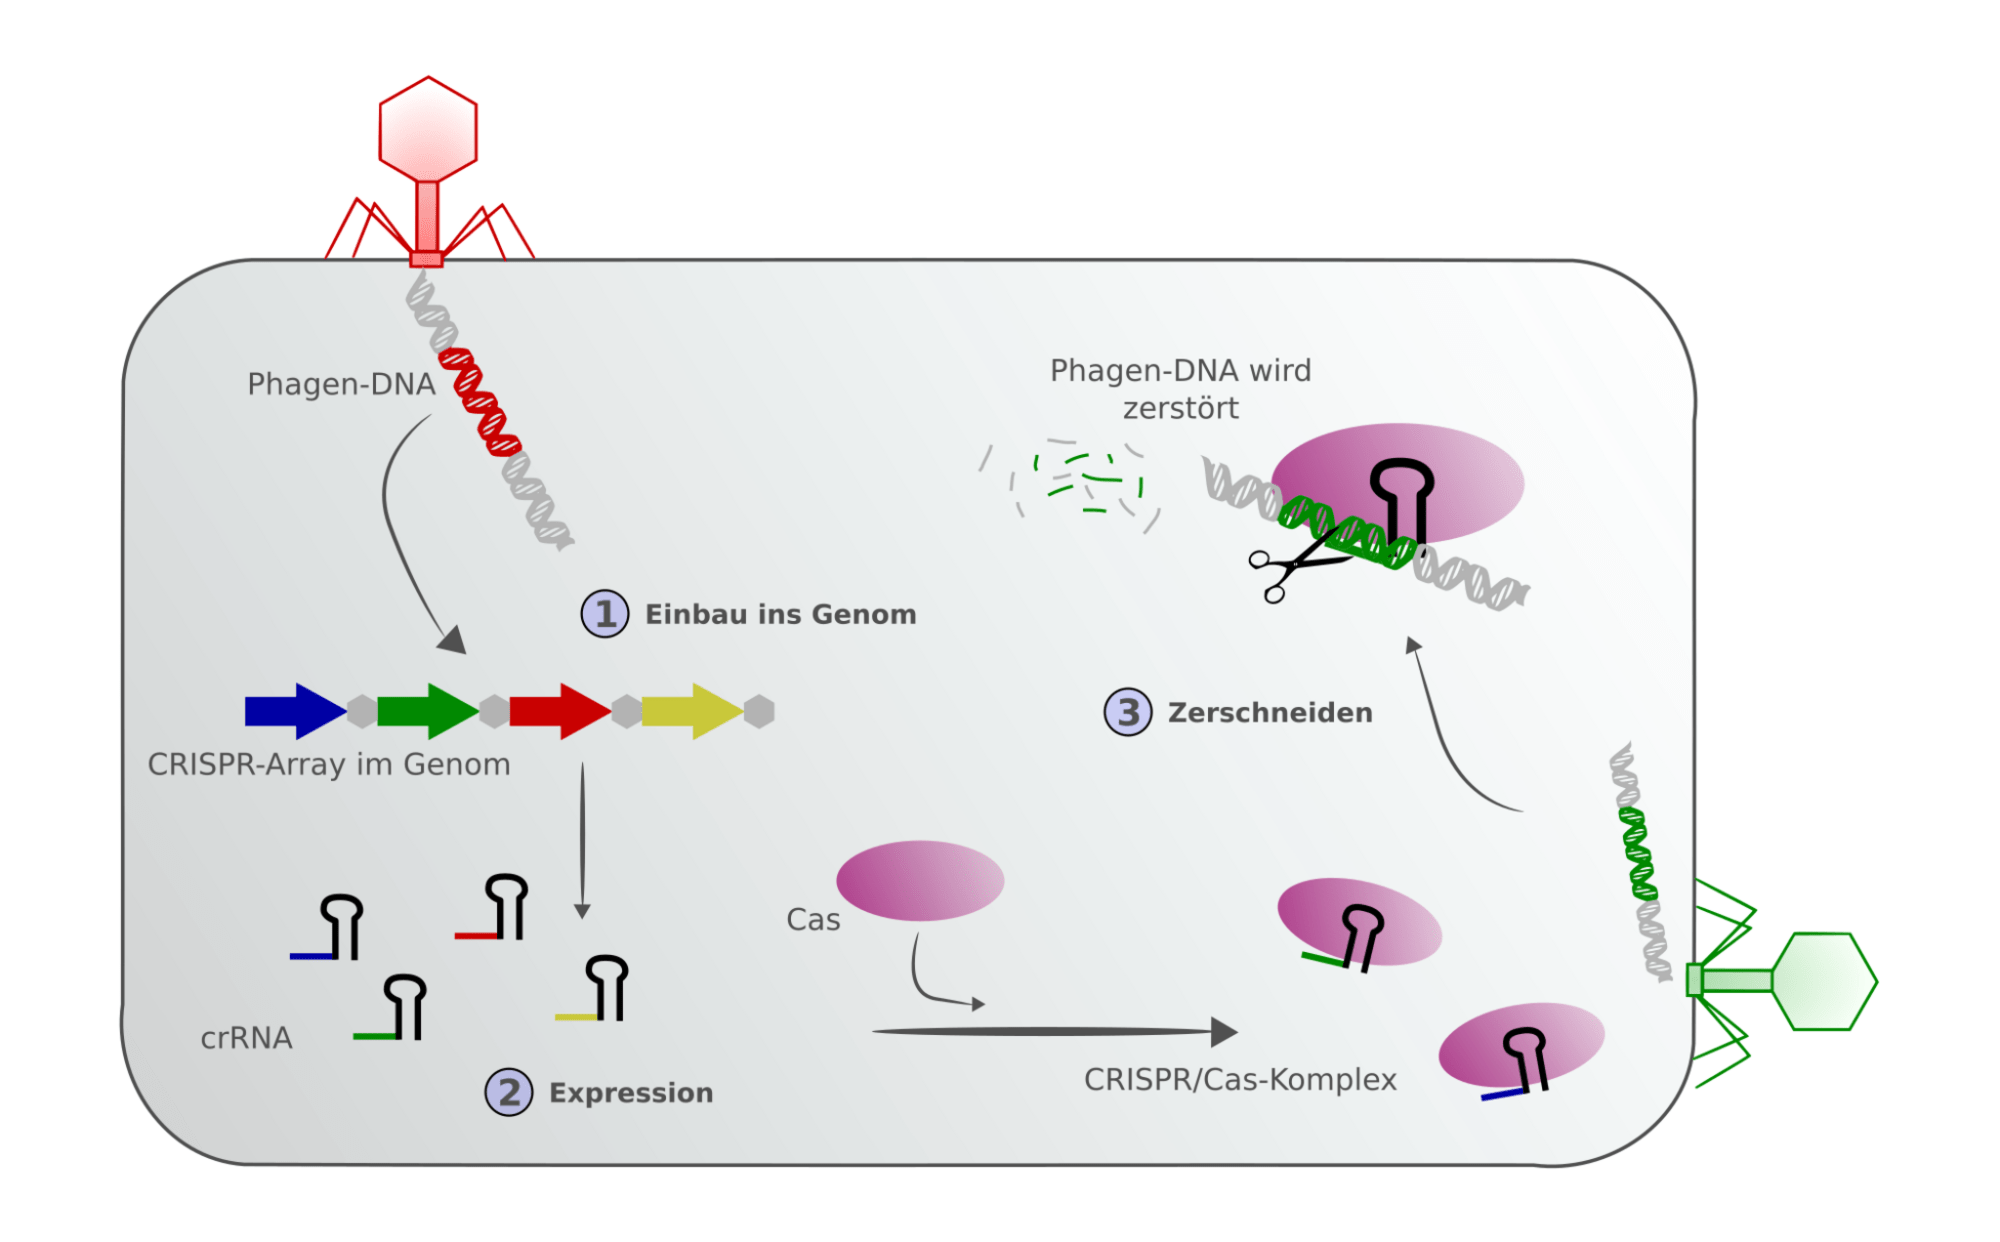 hight resolution of singleimage big view schematic showing the defence chain of a prokaryote with crispr cas integration of a phage genome into the crispr array and an